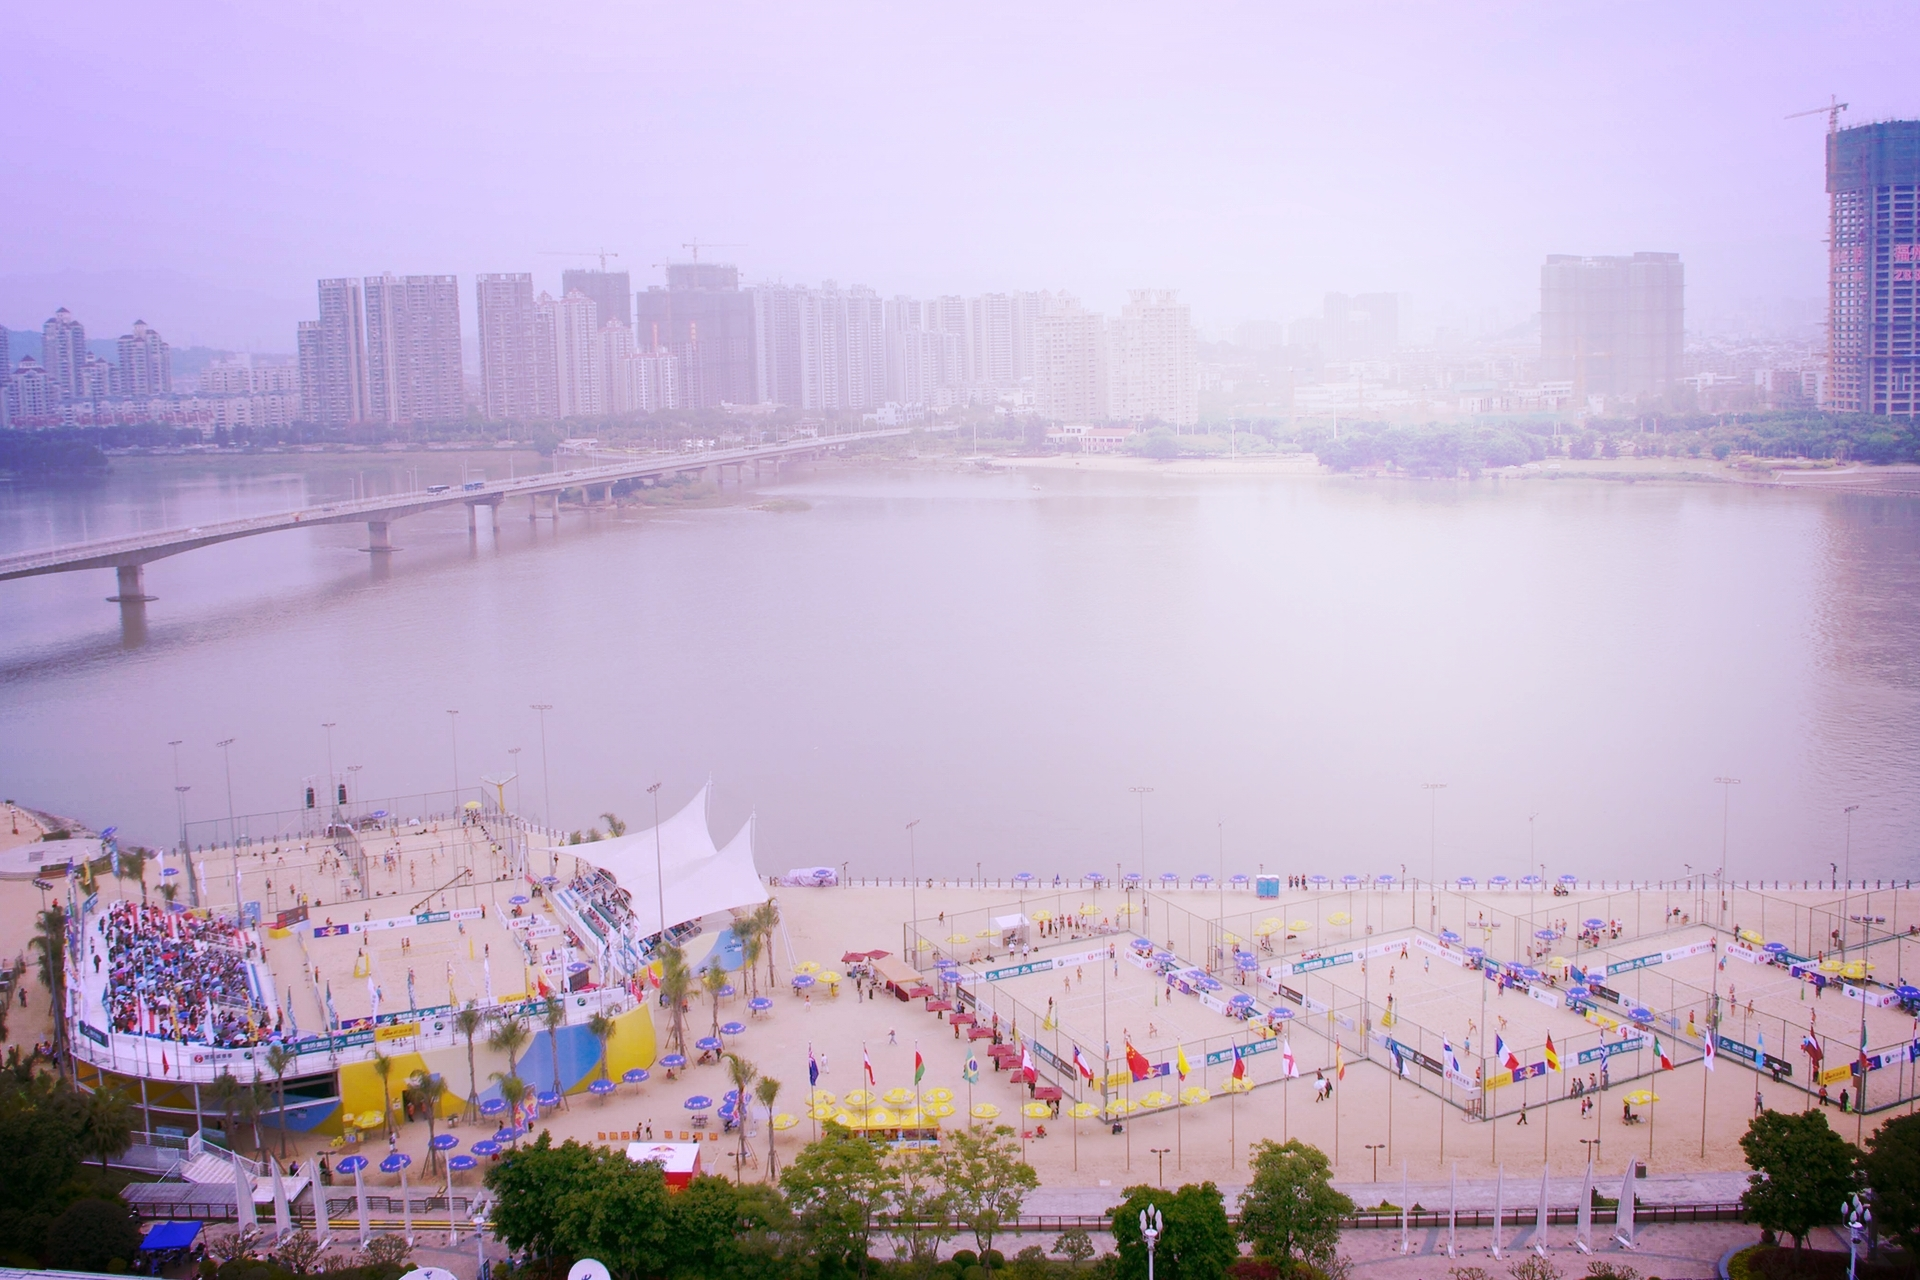 Fuzhou, China. The site of the first event on the 2014 FIVB Beach Volleyball World Tour. Photo: FIVB